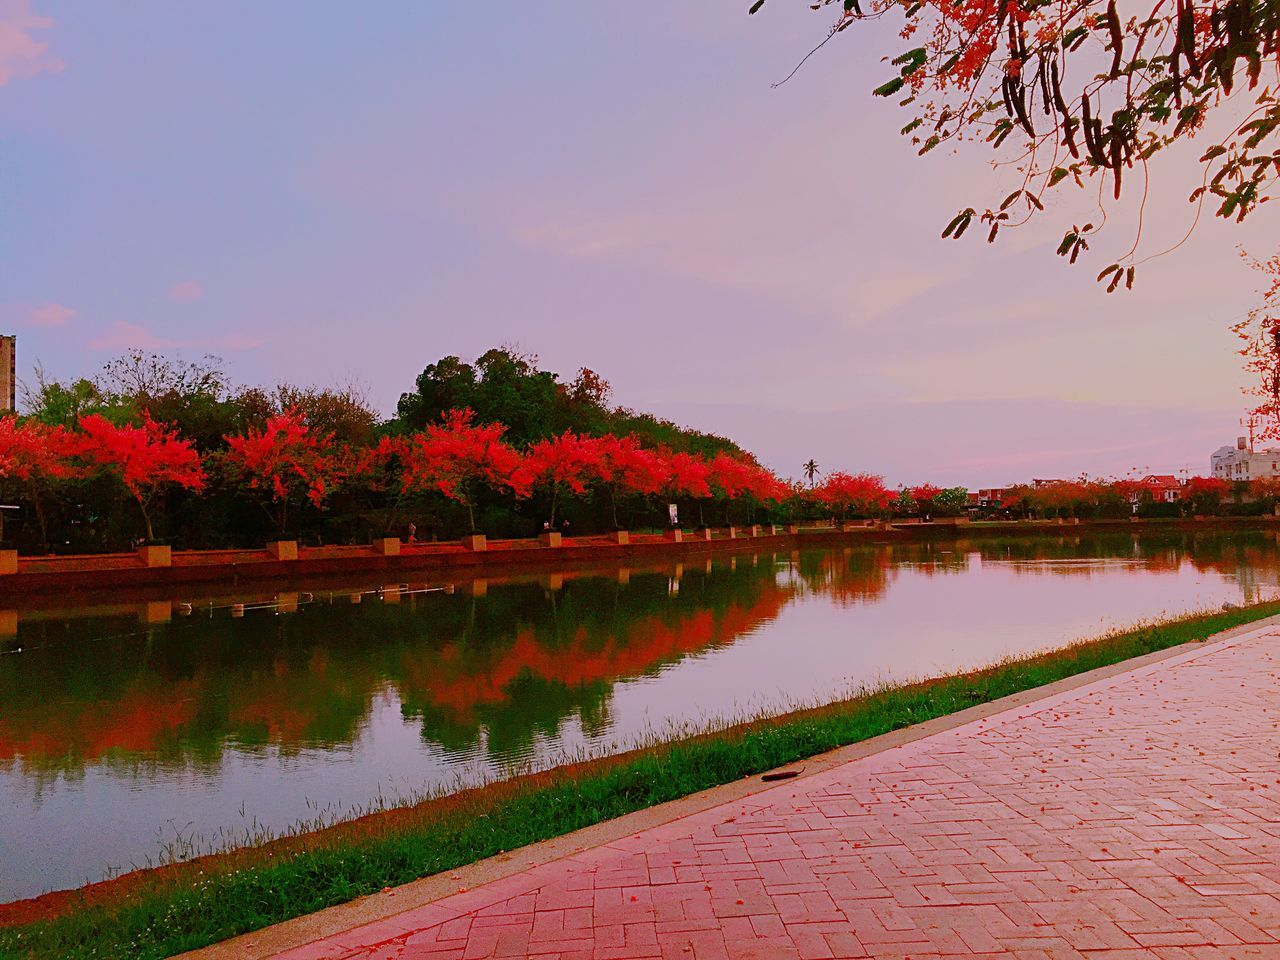 Sagura Thailand : ซากุระ เมืองไทย Reflection Water Tree Nature Beauty In Nature Scenics Sky Flower Waterfront Growth Tranquil Scene Tranquility Outdoors Lake Idyllic Sunset No People Day Thailand